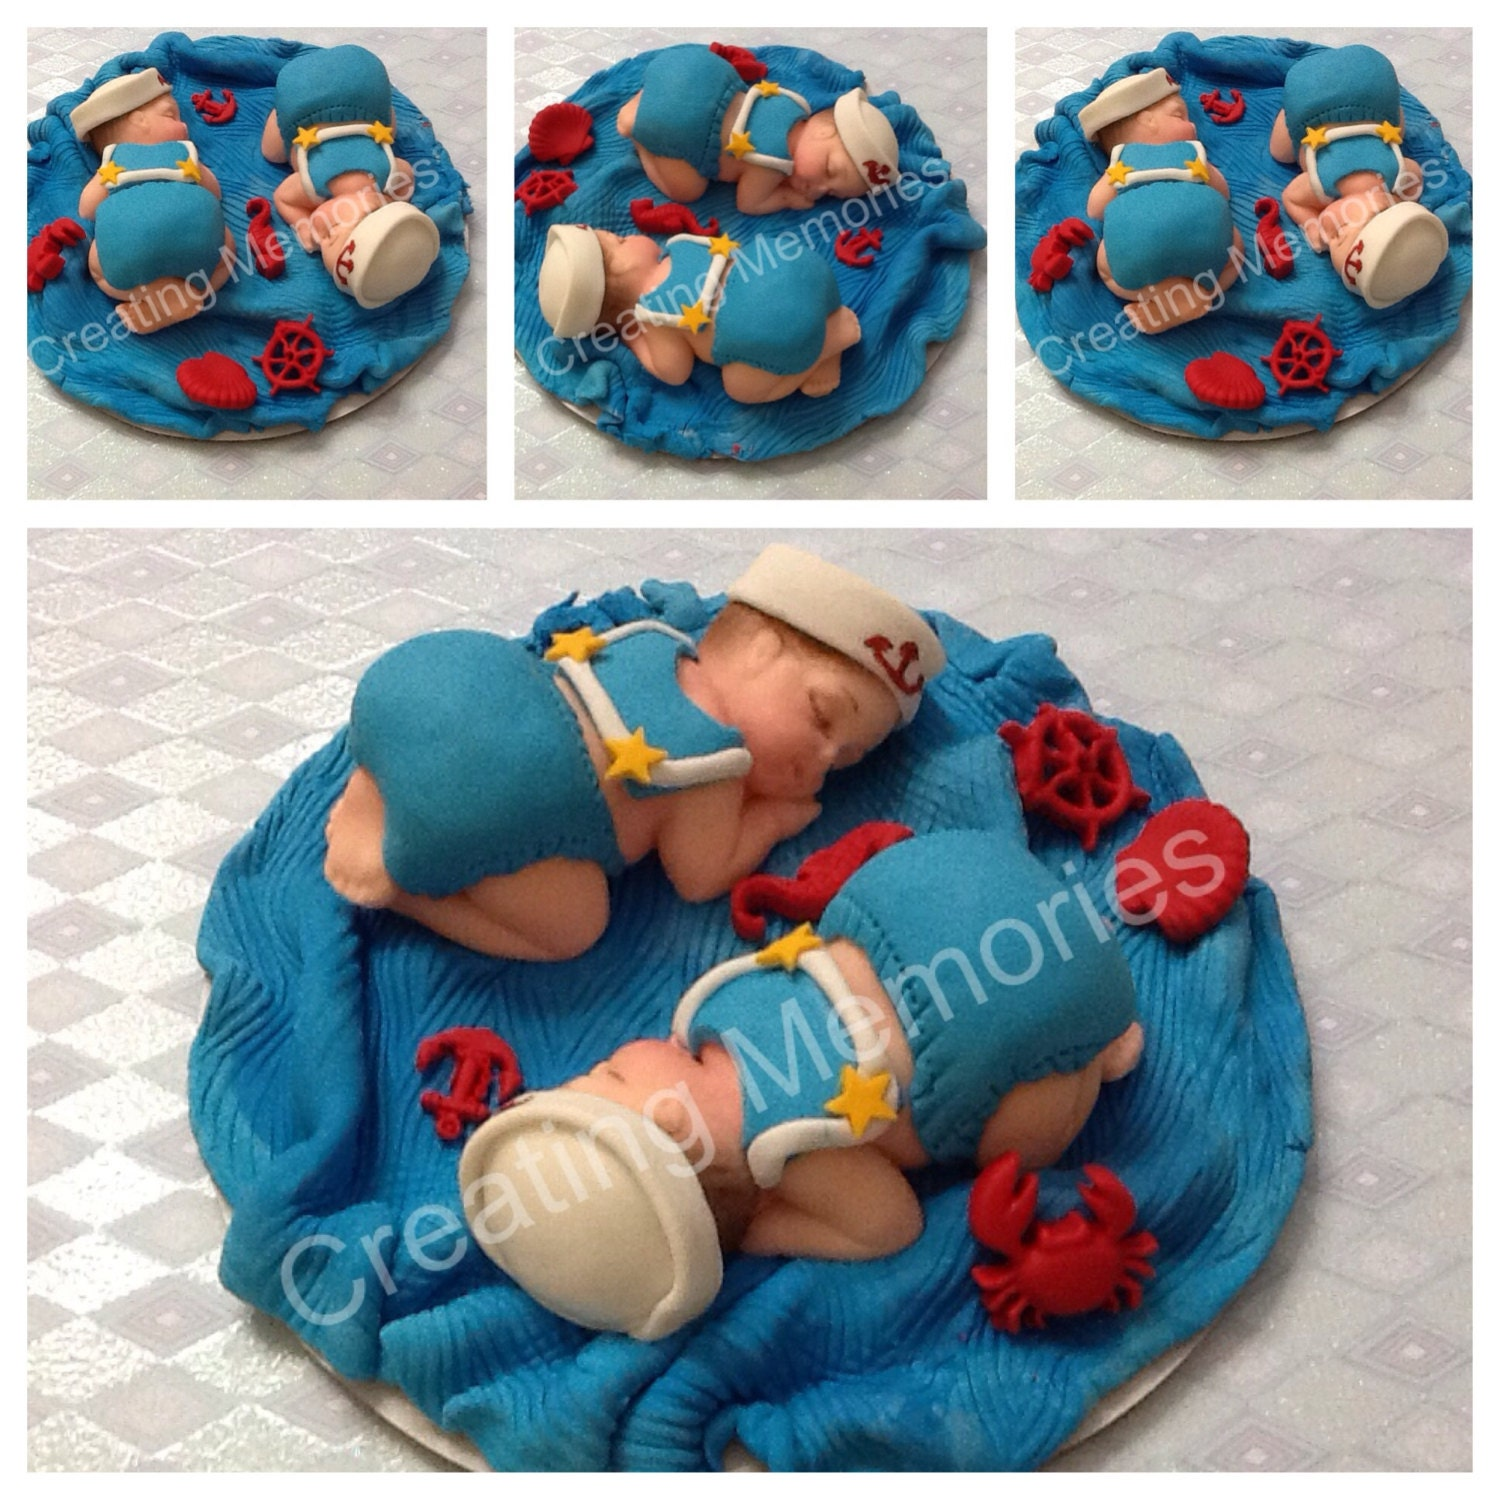 Twin Baby Shower Cake Toppers: Twin Babies Sailors Cake Topper For BABY SHOWER Or Any